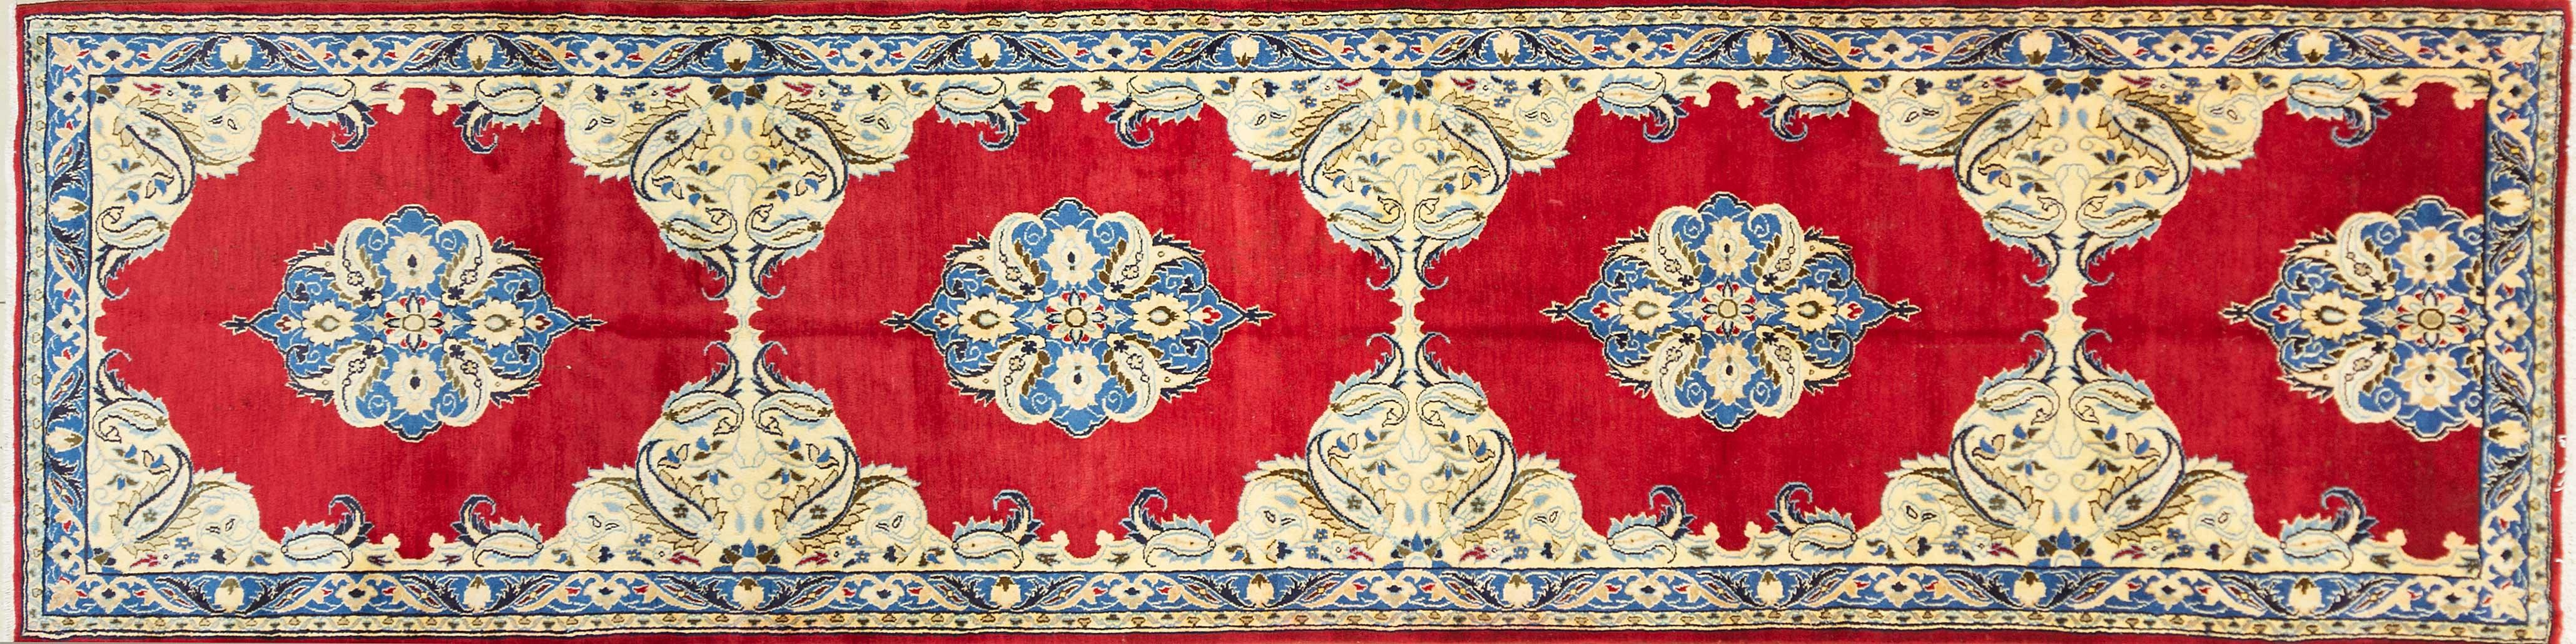 A Persian Hand Knotted Kerman Runner, 385 x 100